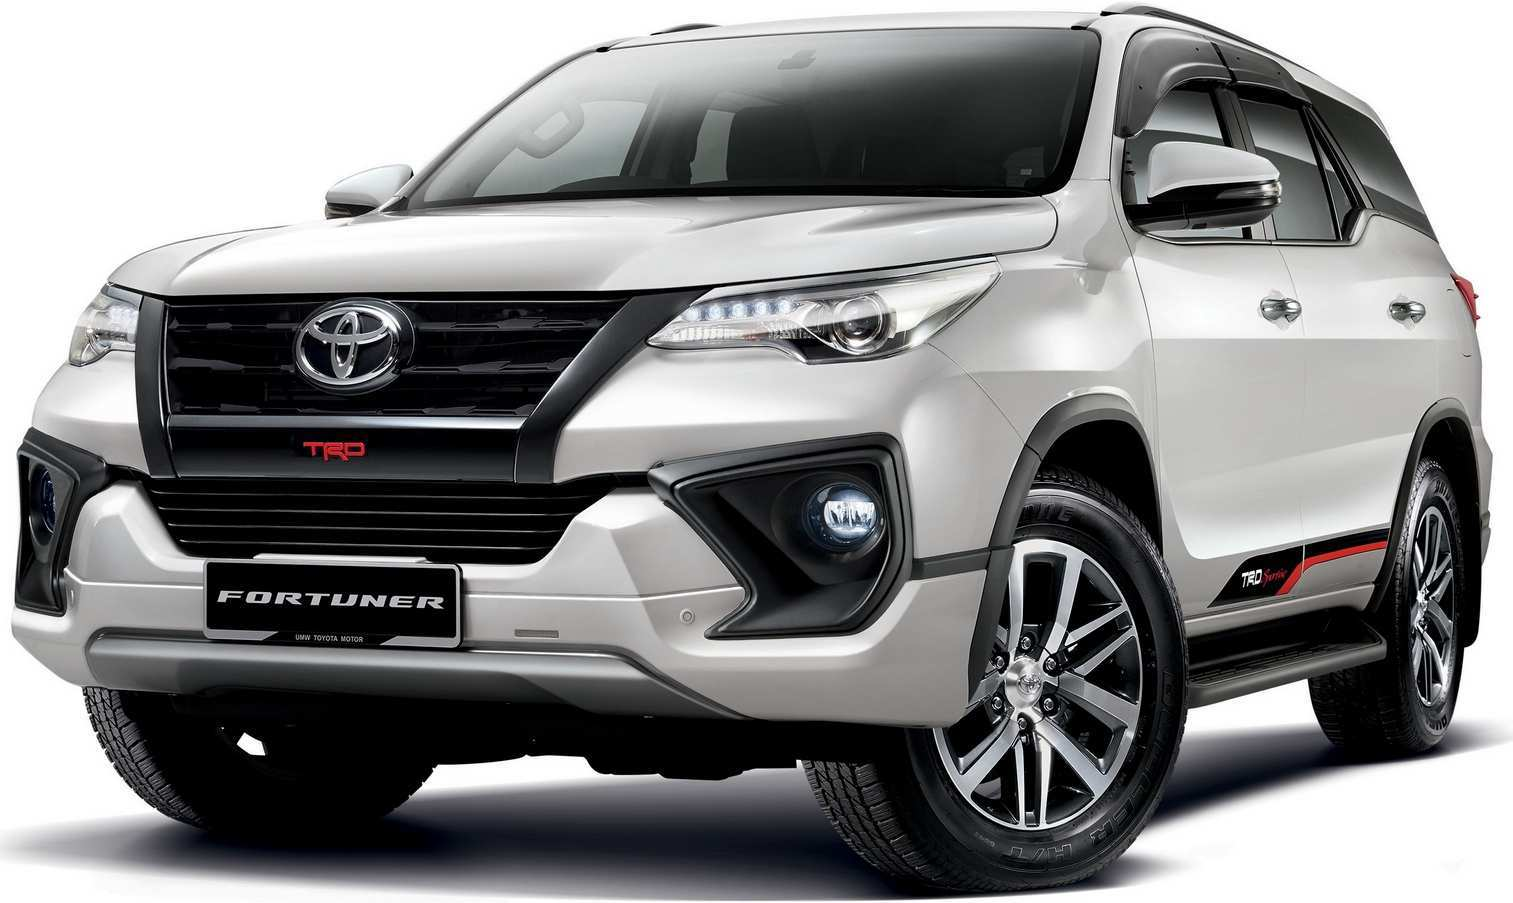 87 Best Review Toyota Fortuner 2020 Exterior Philippines Engine by Toyota Fortuner 2020 Exterior Philippines